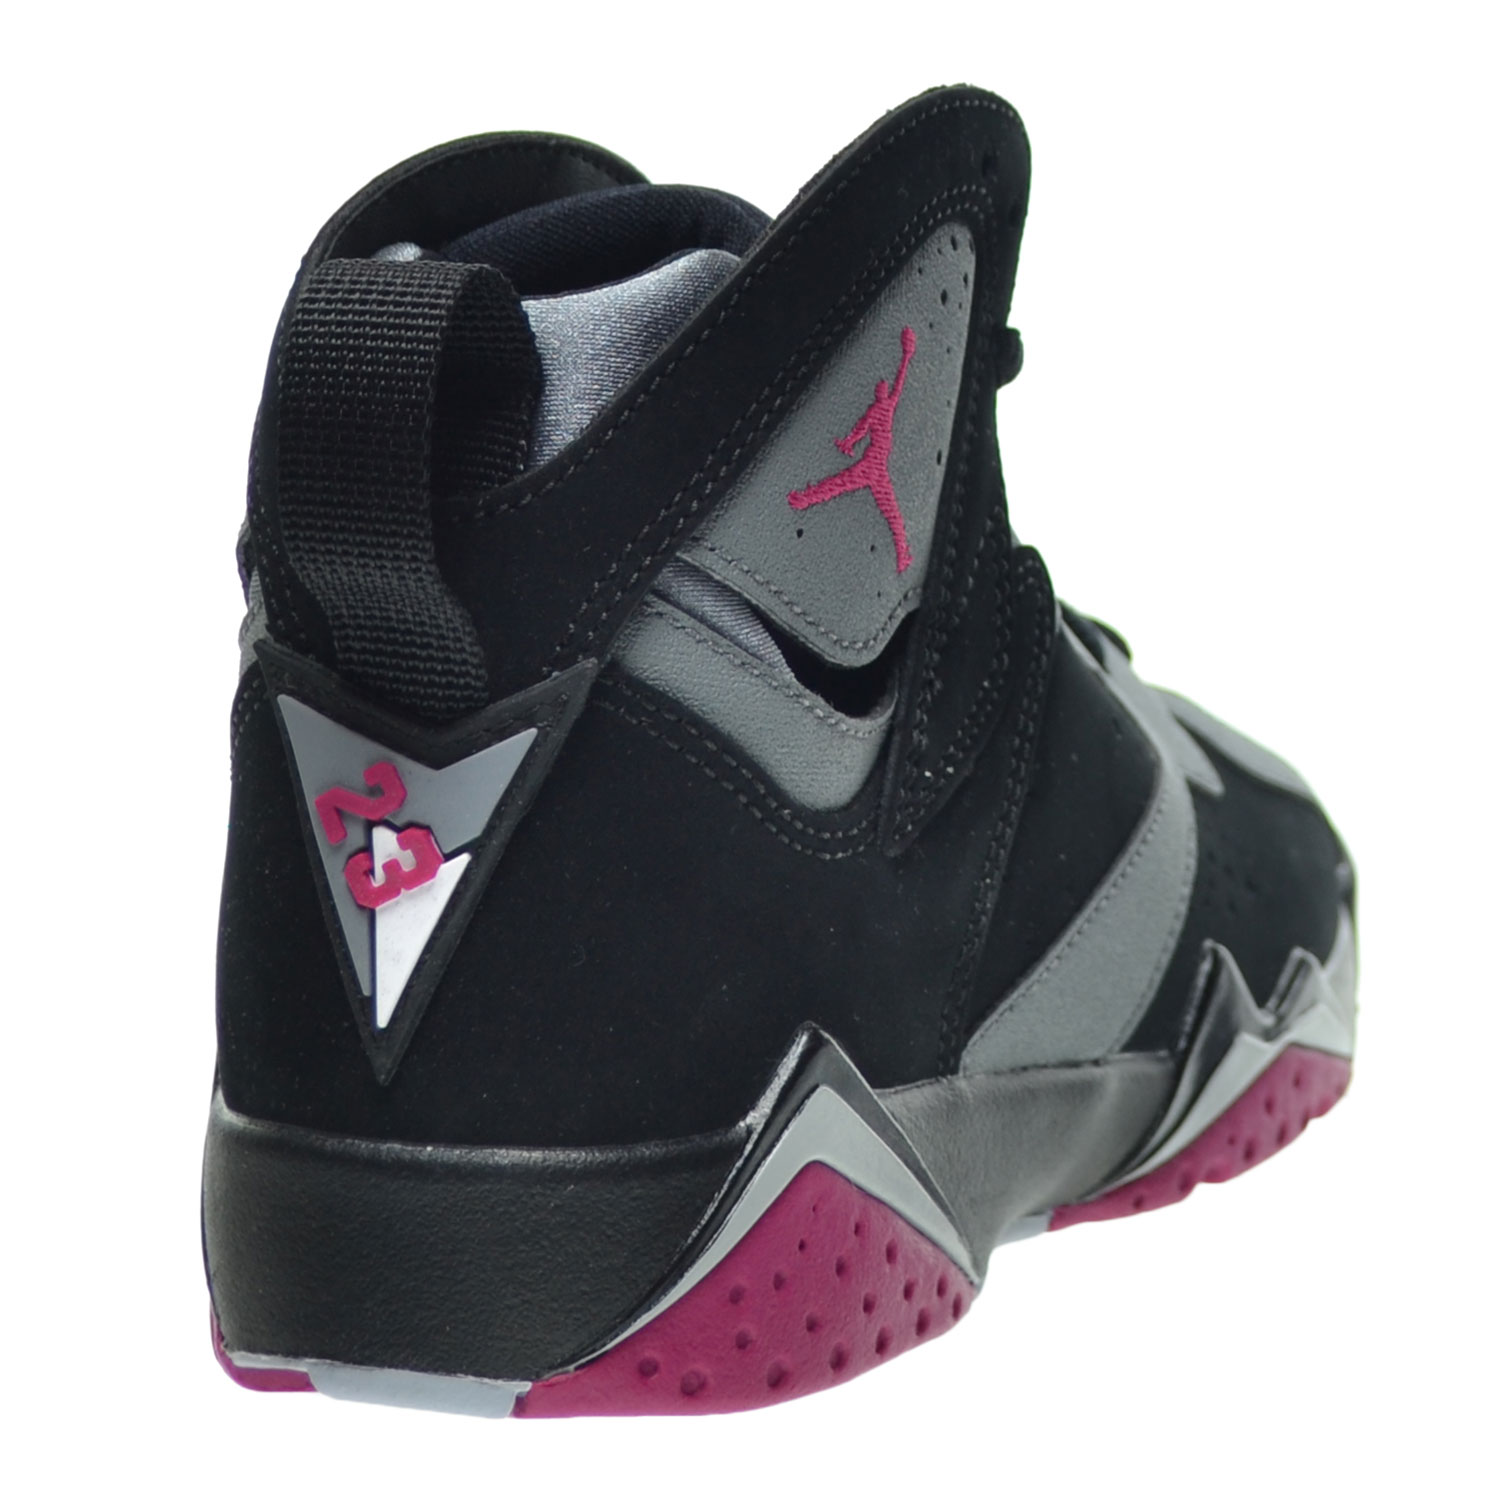 quality design ed232 5c2ca Air Jordan 7 Retro GG Big Kid s Shoes Black Sport Fuchsia Wolf Grey  442960-008